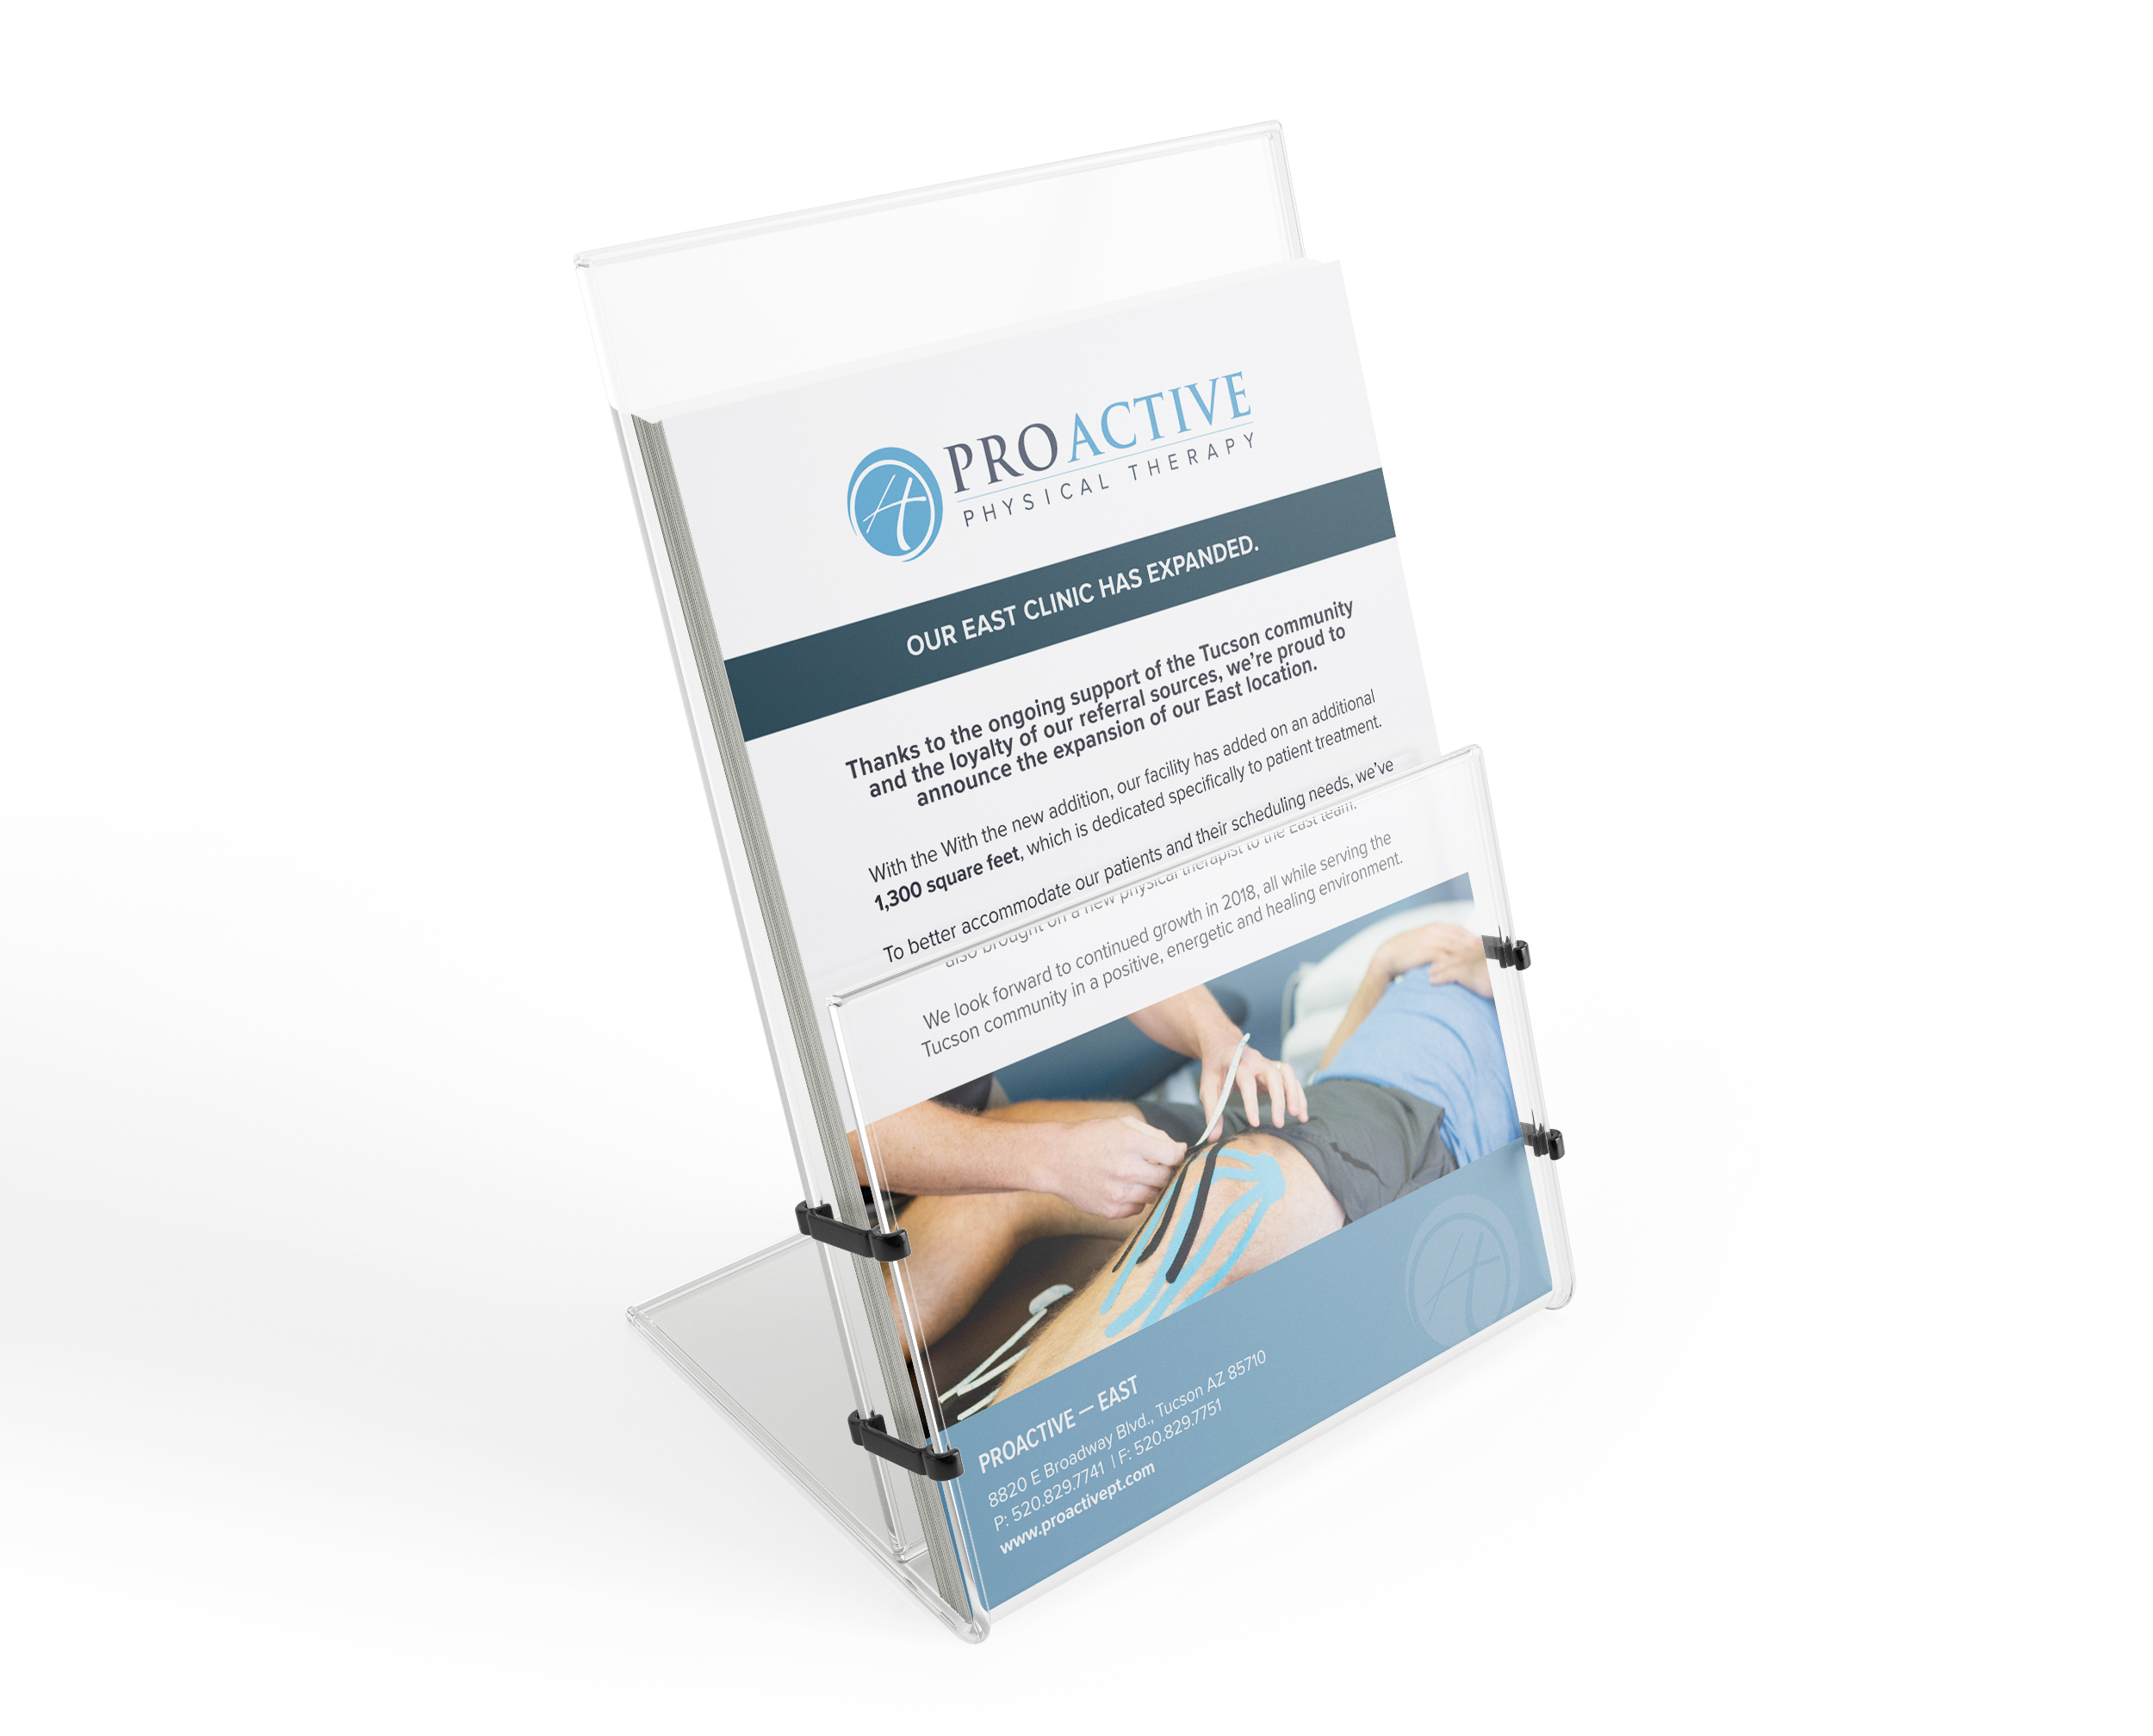 Graphic-Design-for-Healthcare-Industries---Graphic-Design-Physical-Therapy.jpg